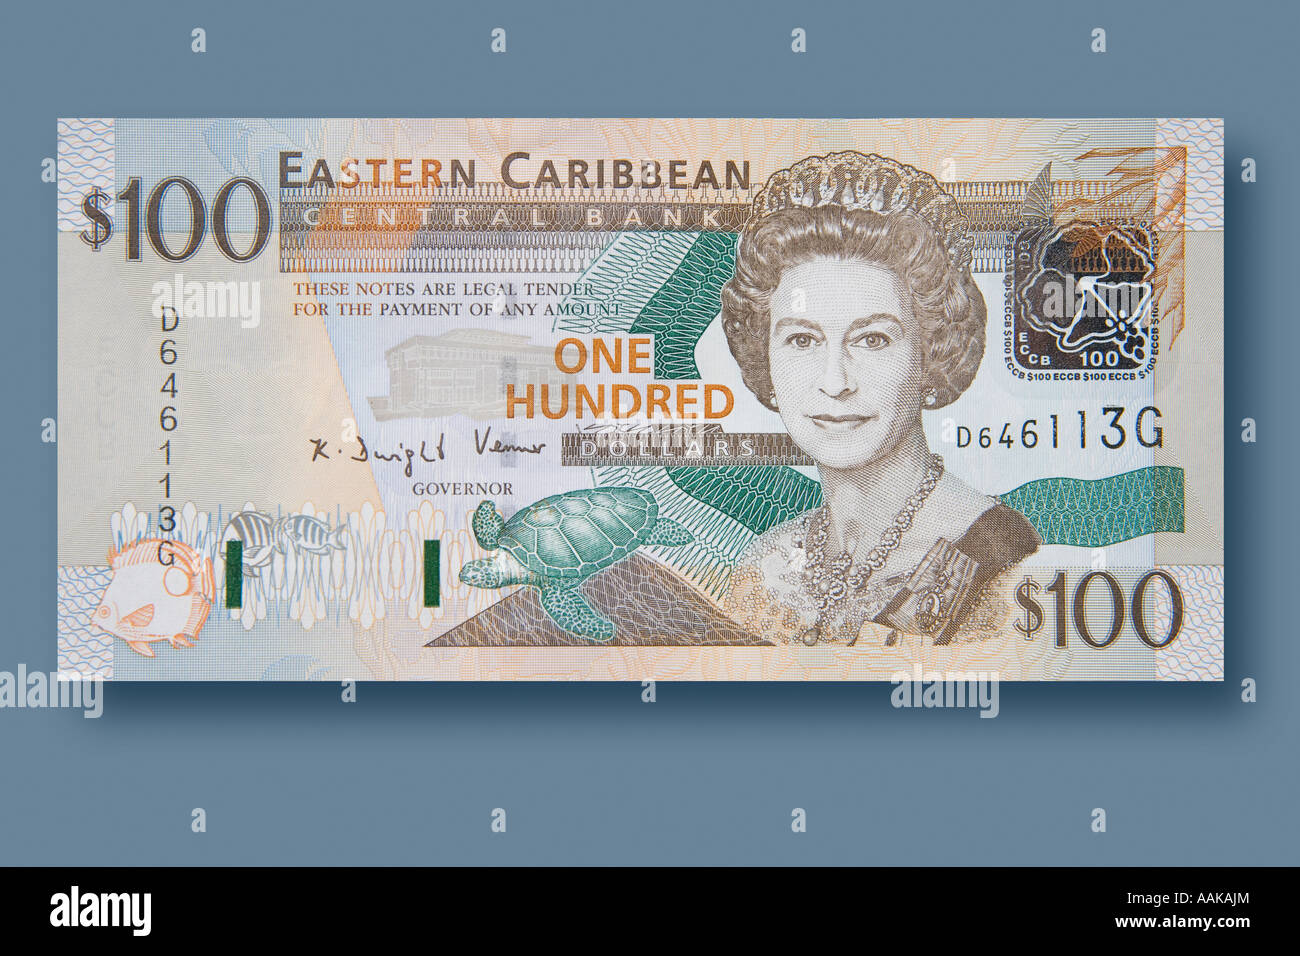 A 100 dollar bill from the EC or Eastern Caribbean. - Stock Image